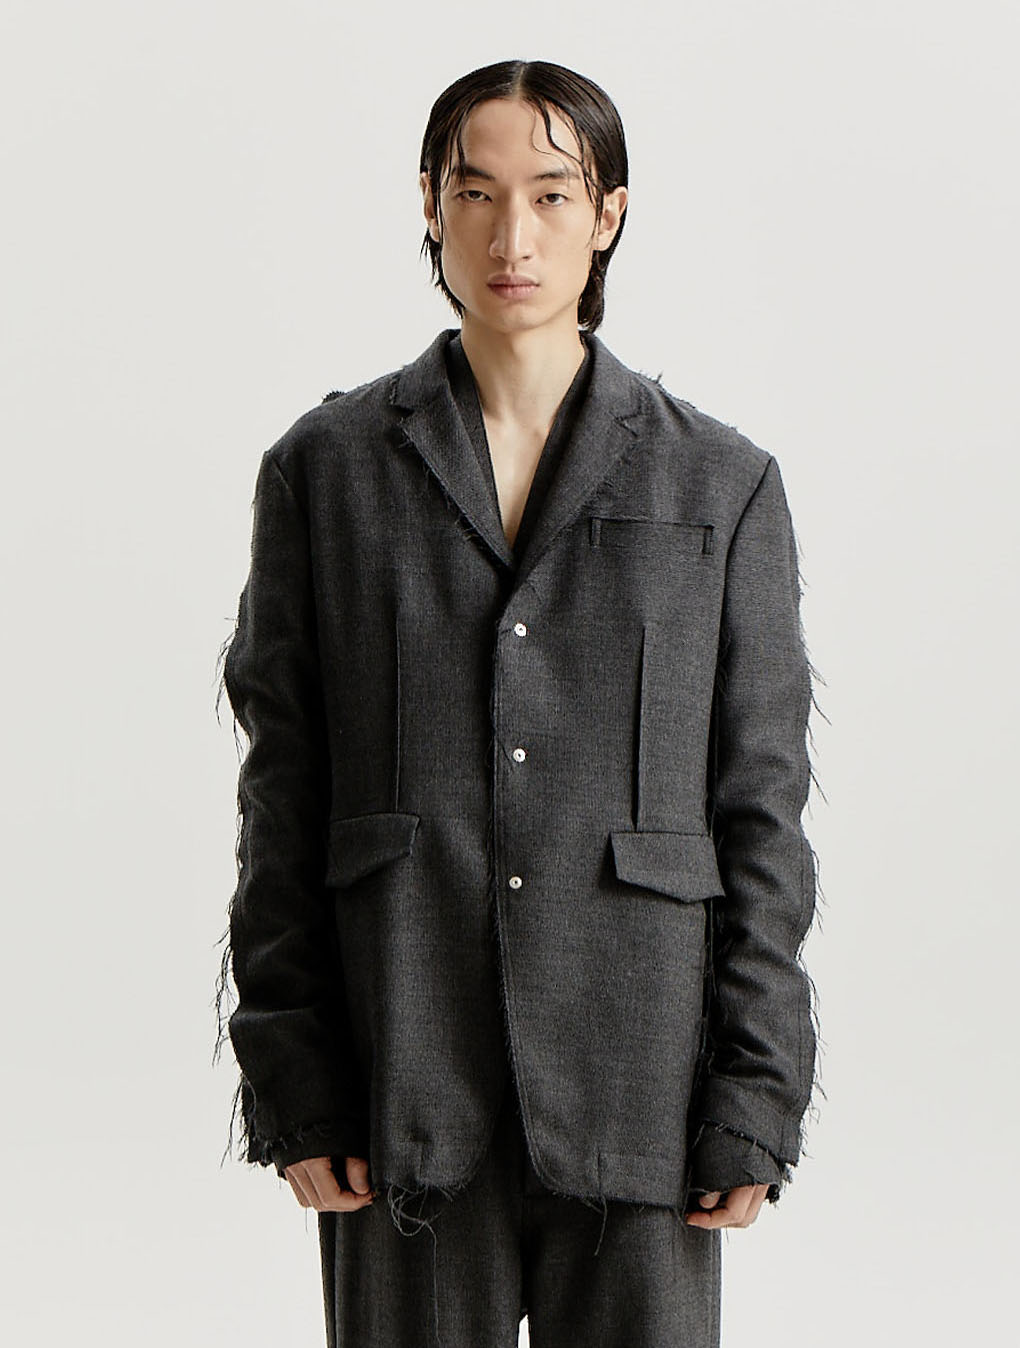 Dark Grey Wool Woven Inside Out Distressed Long Blazer